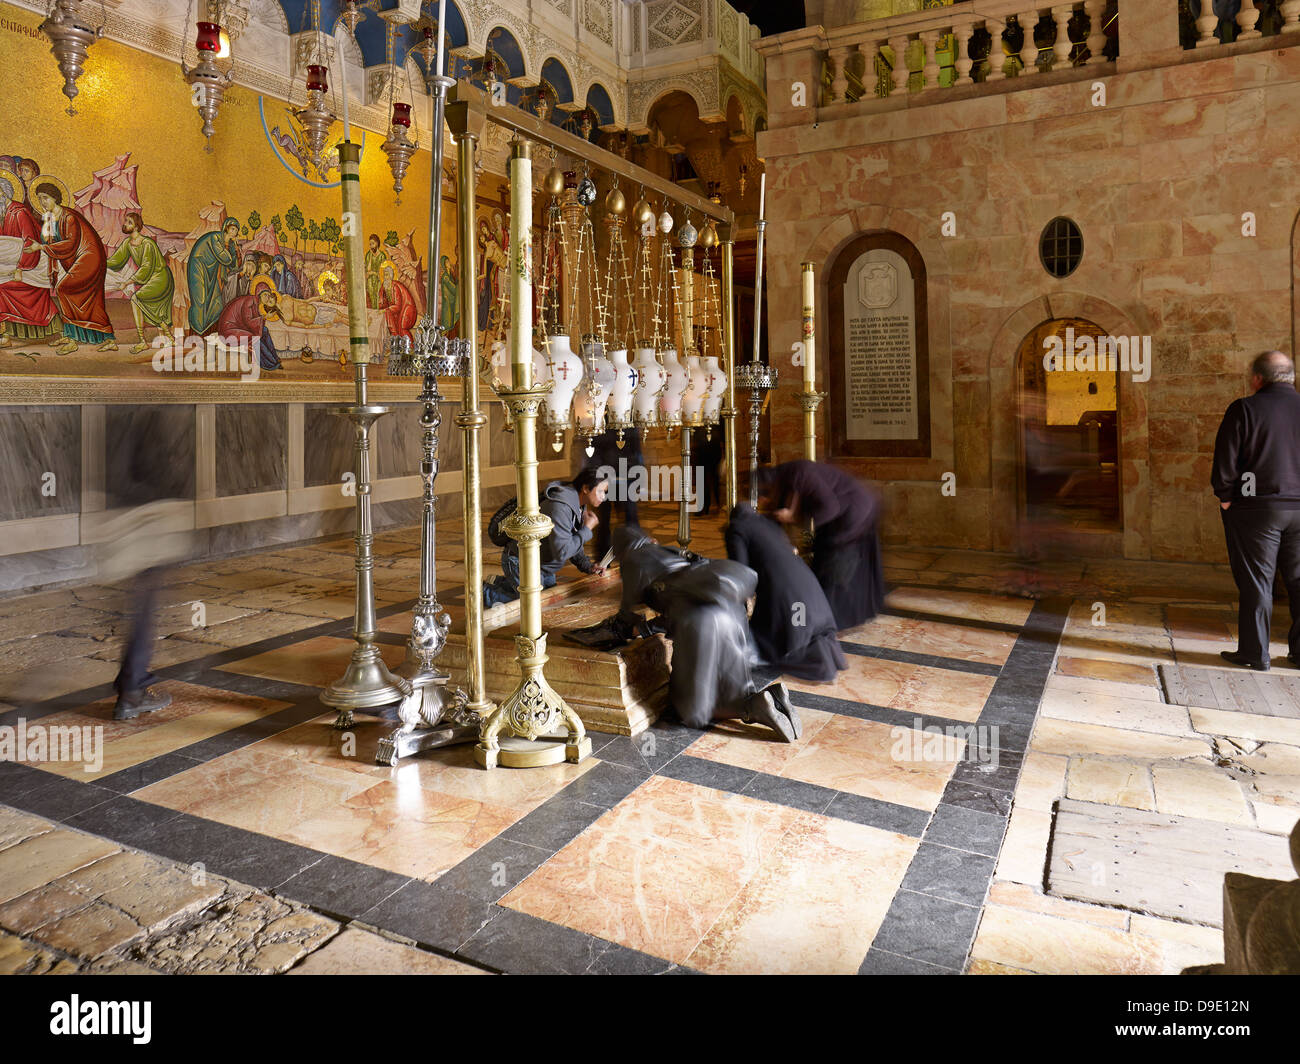 Stone of anointment in the Church of Holy Sepulchre in Jerusalem, Israel - Stock Image